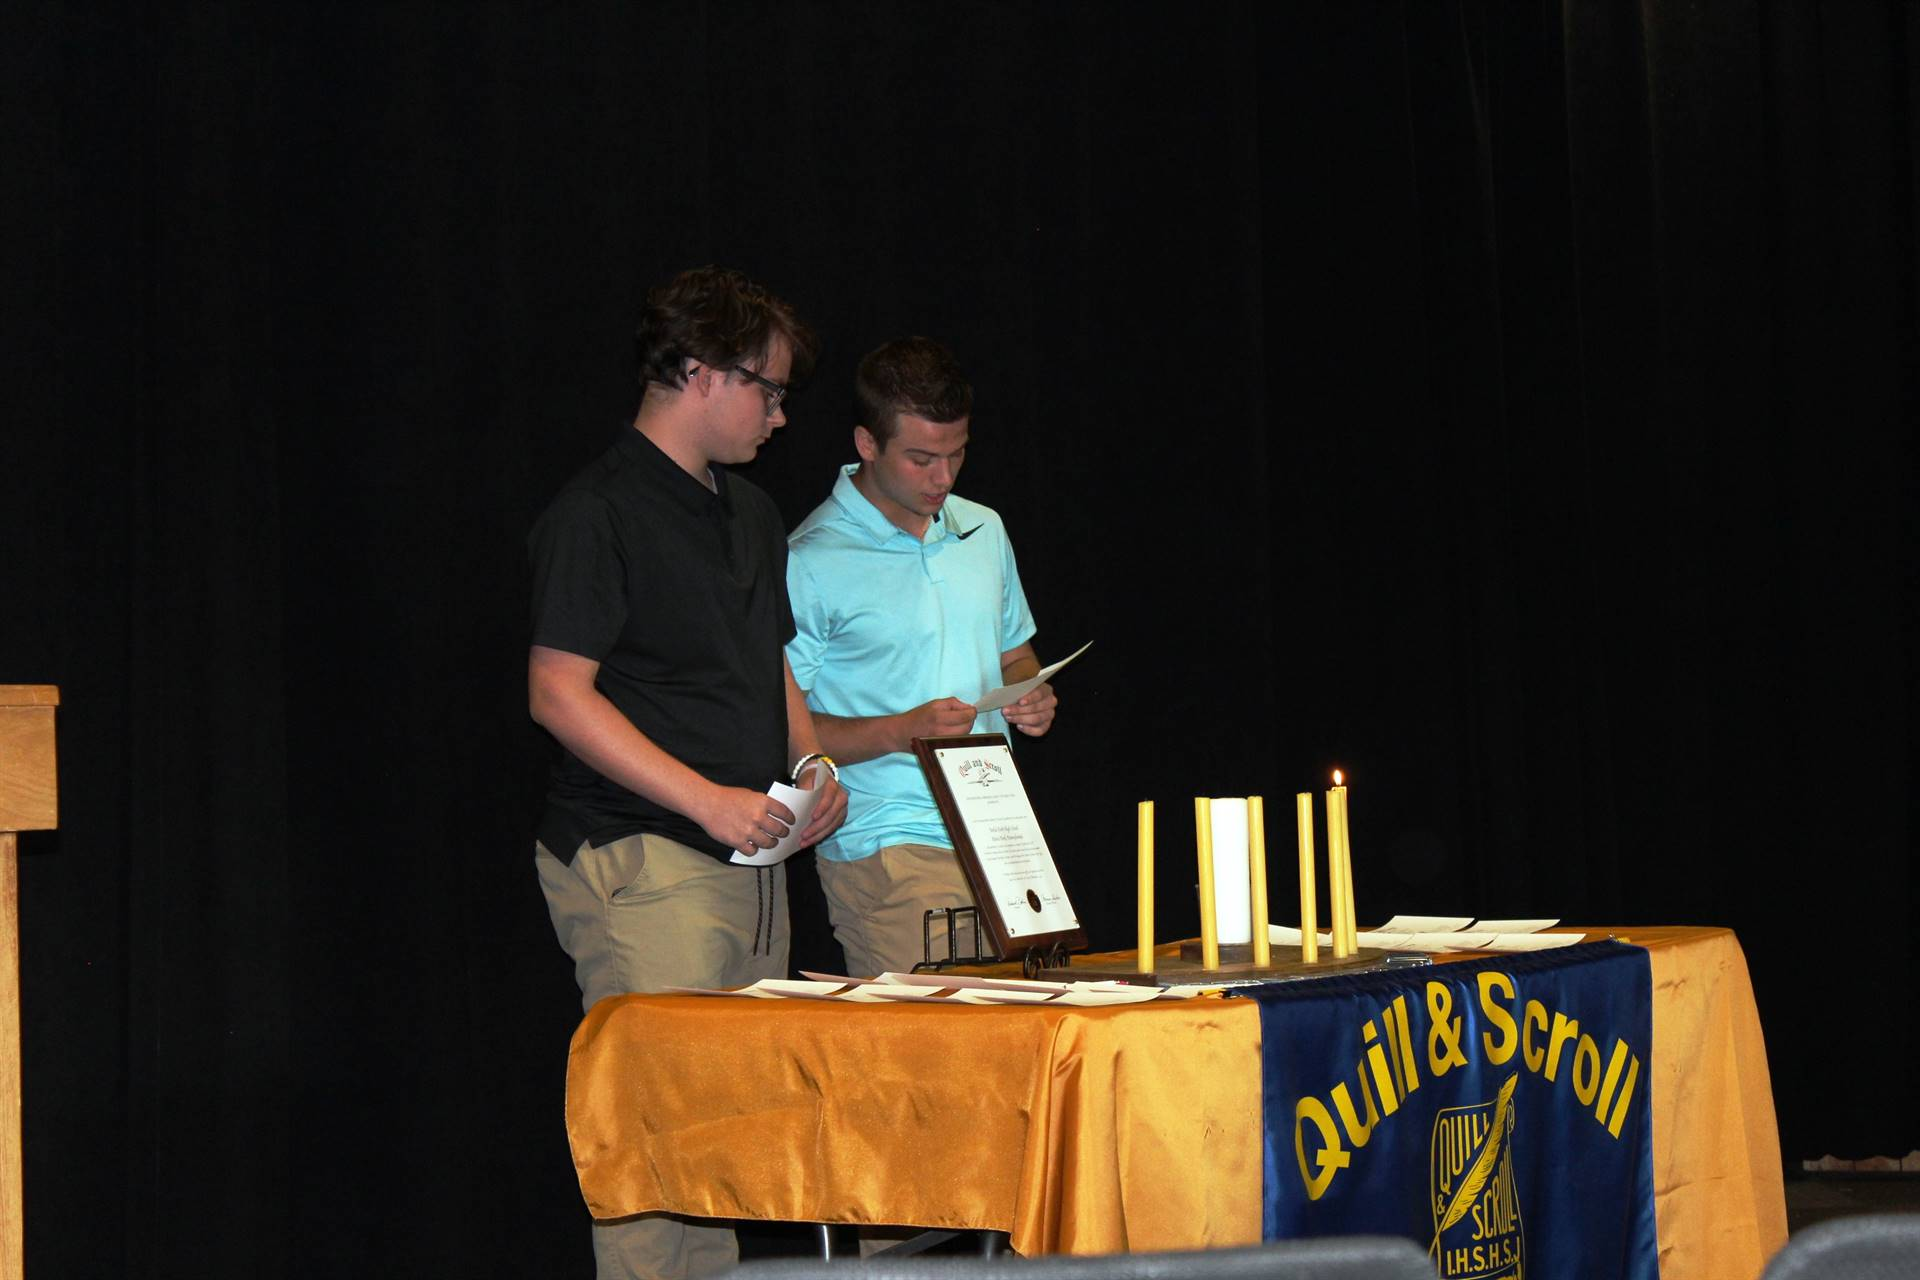 Two students participating in the candle lighting ceremony